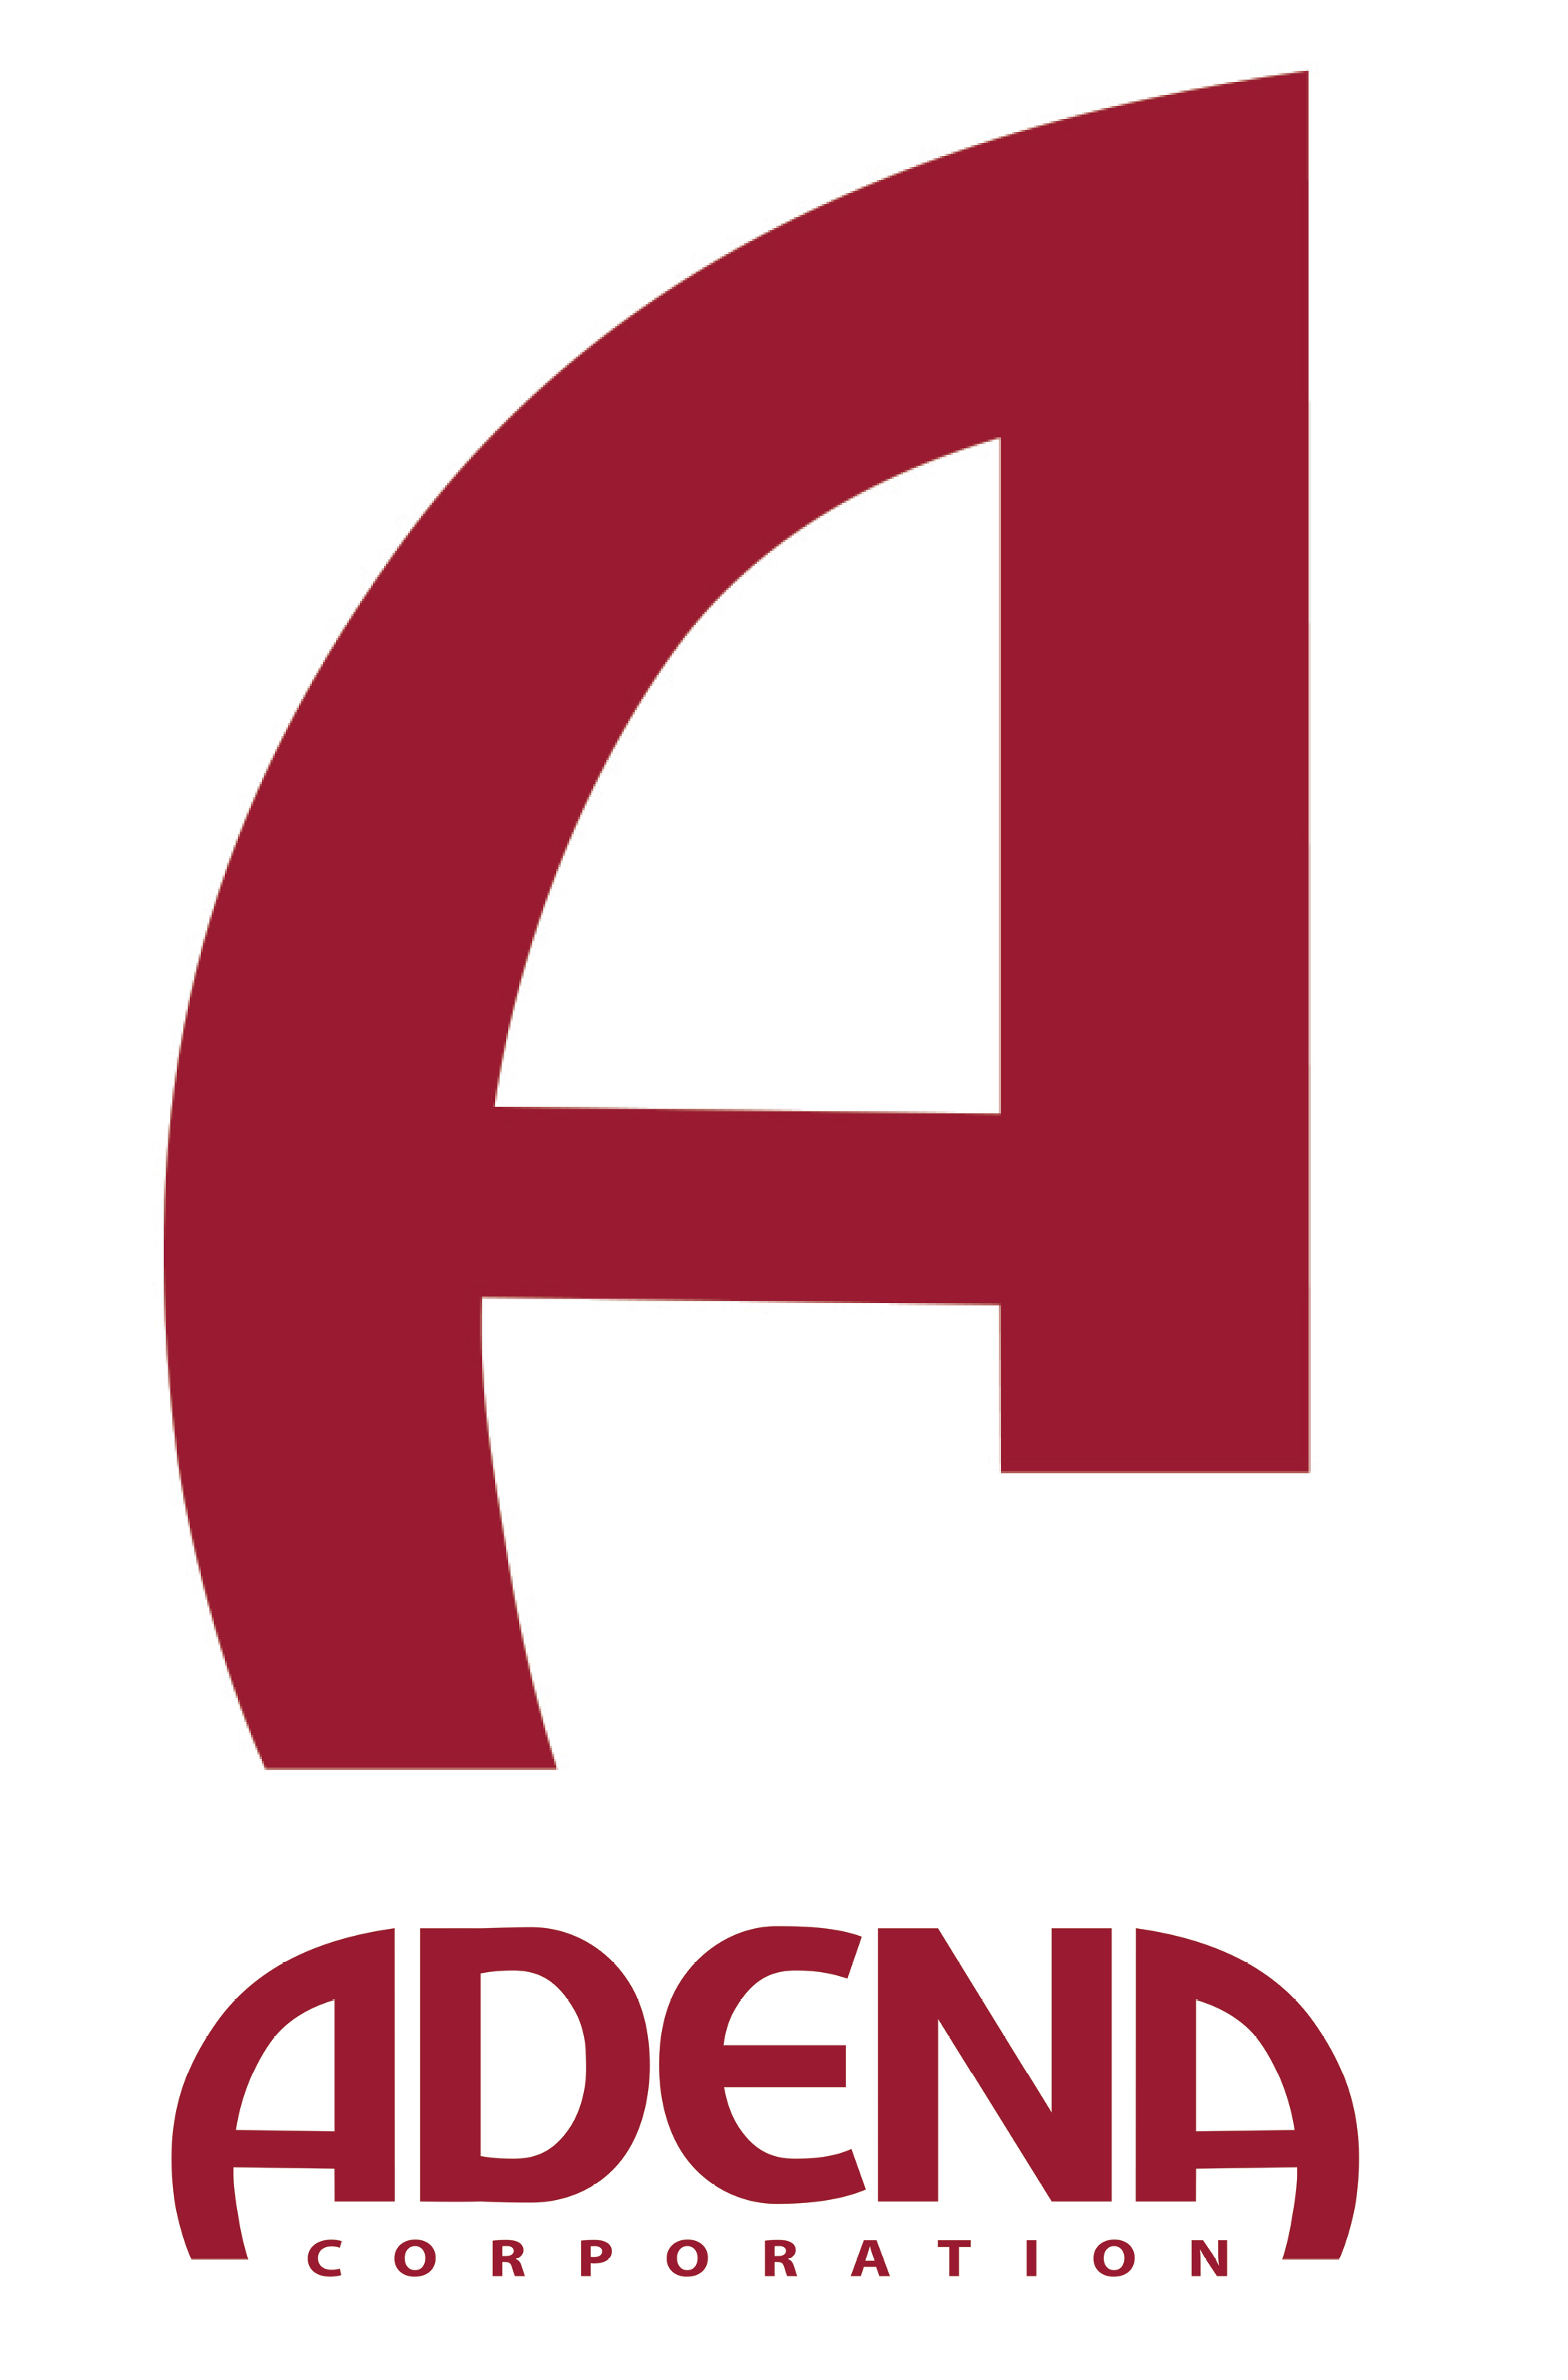 Adena Corporation is hiring for a Heavy Equipment Mover/Hauler